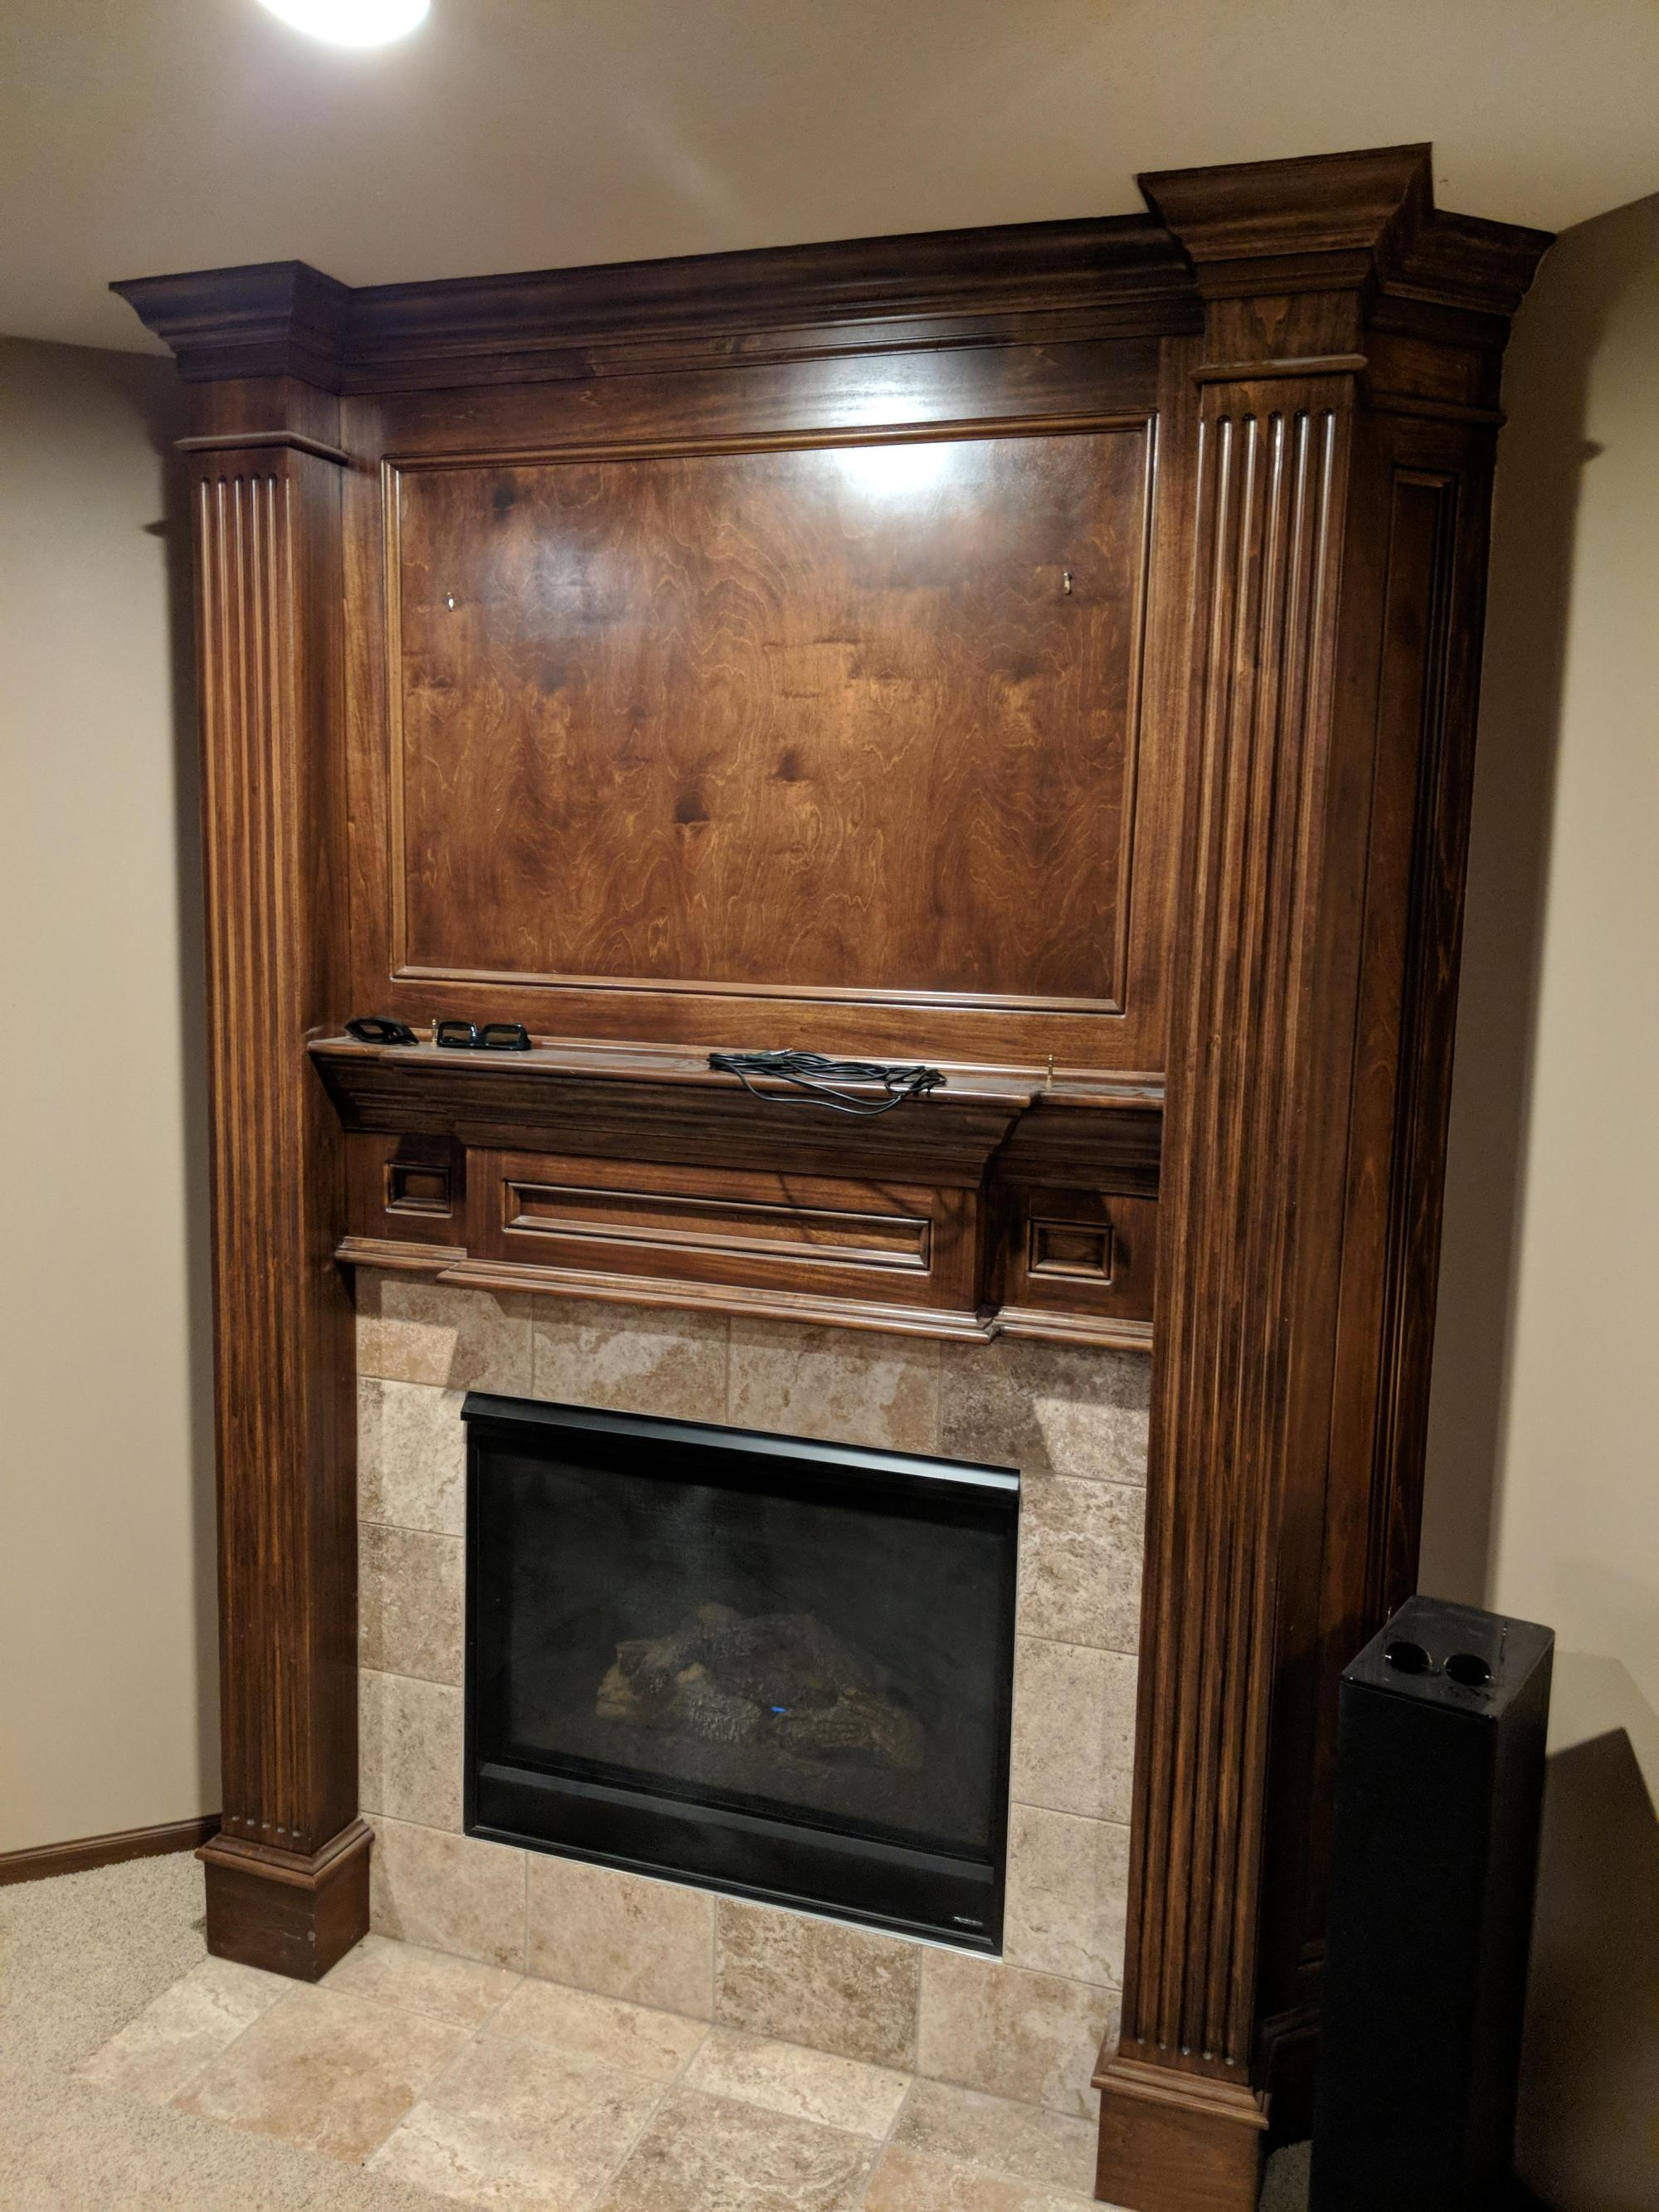 hight resolution of ugh fireplacesbest option for running speaker wire around fireplace